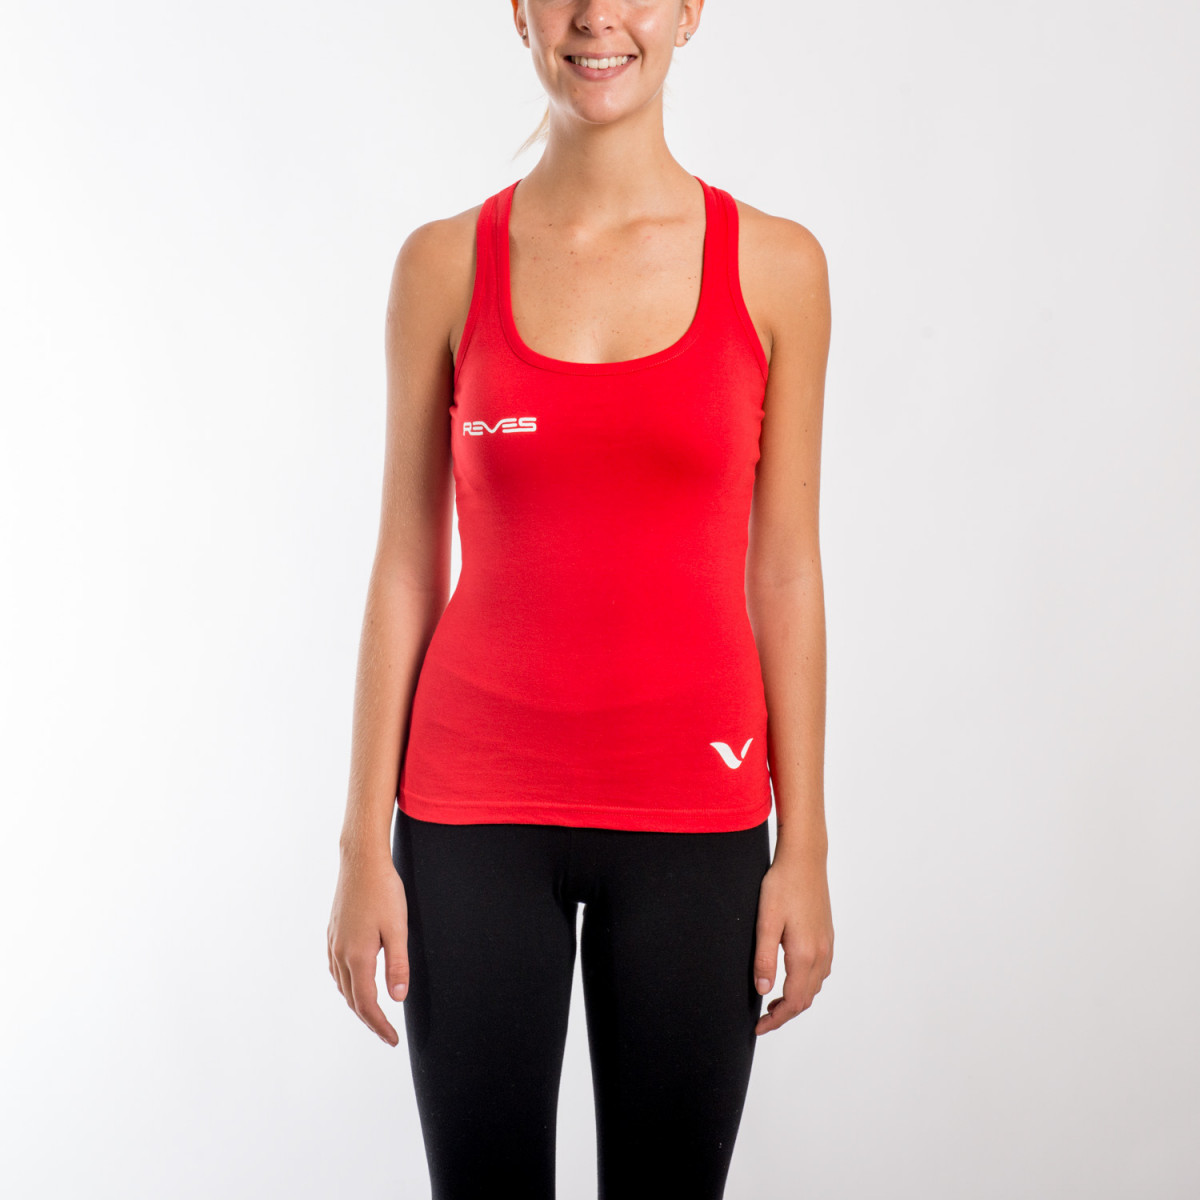 MUSCULOSA REVES DAMA TOP TEAM